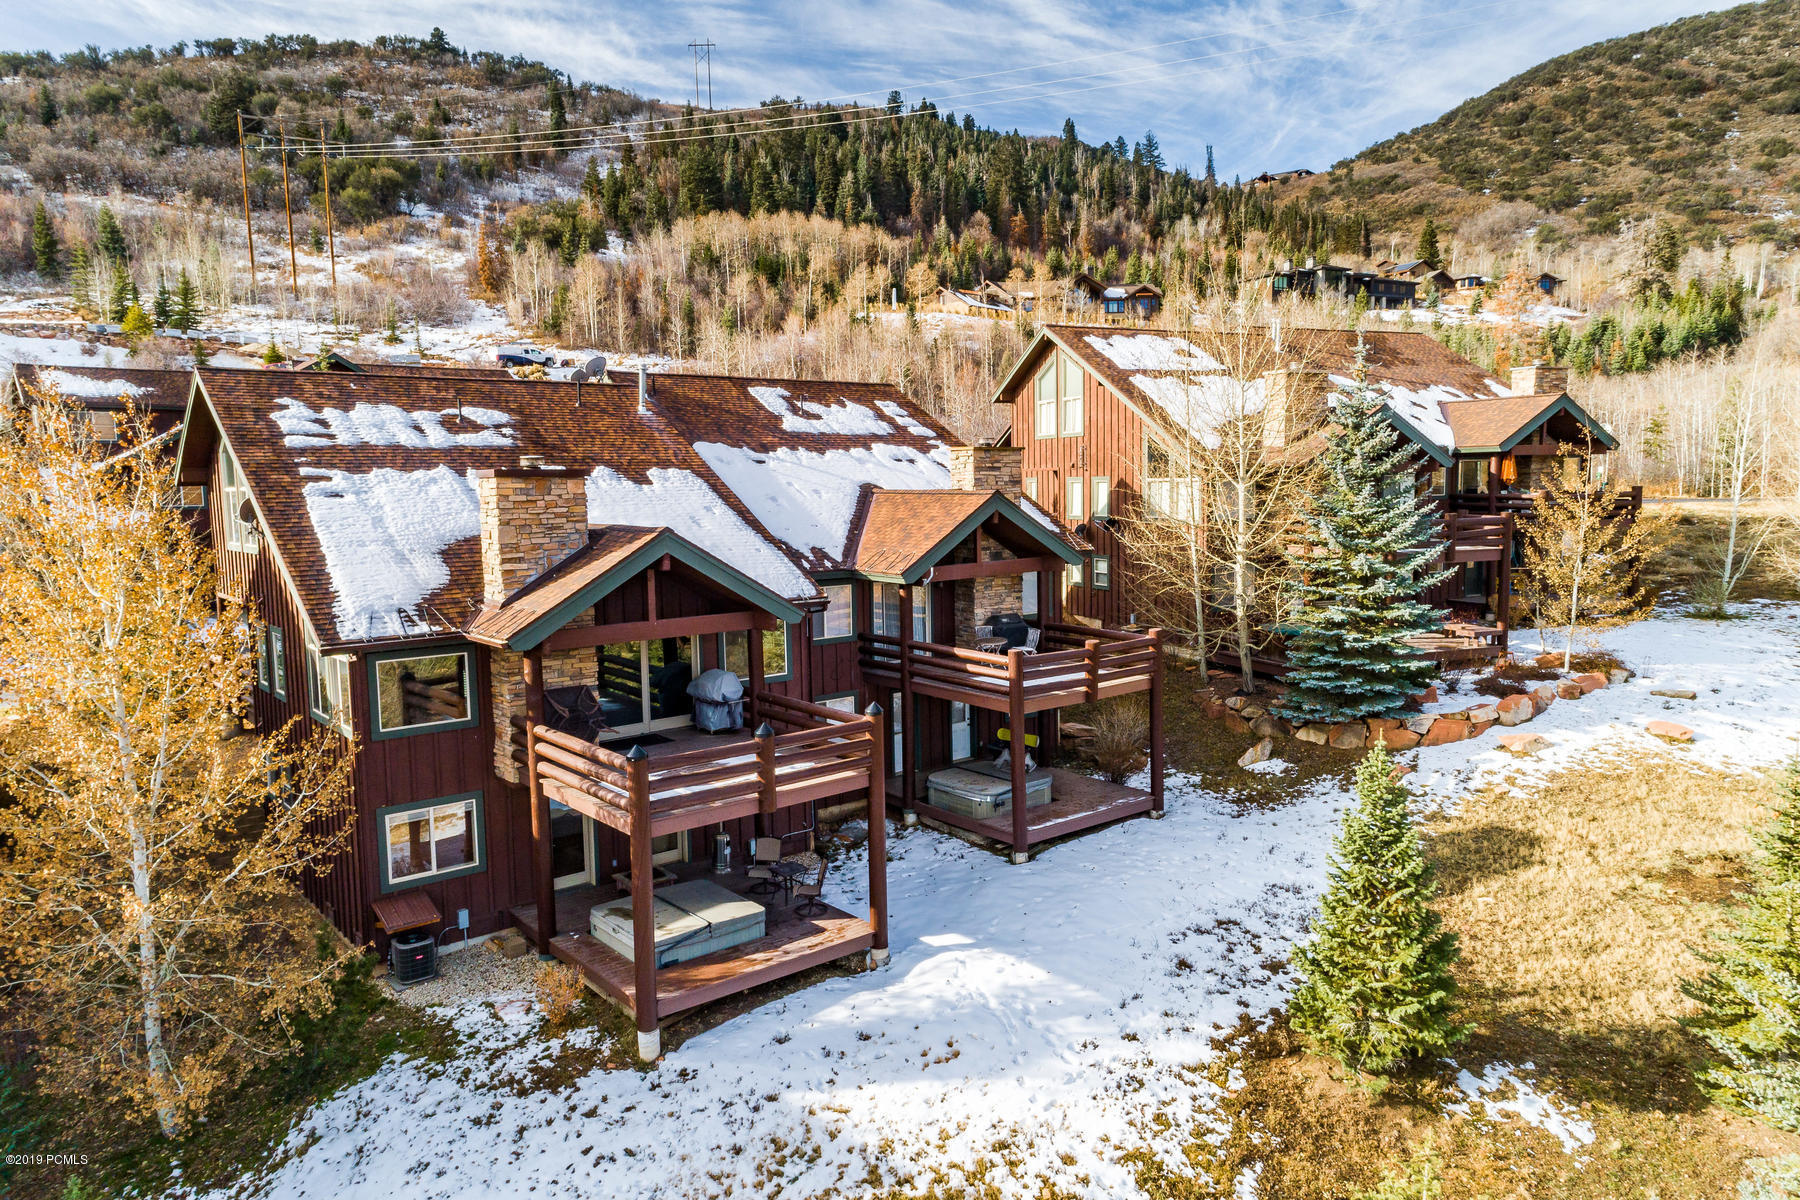 5151 Cove Canyon Drive, Park City, Utah 84098, 3 Bedrooms Bedrooms, ,3 BathroomsBathrooms,Condominium,For Sale,Cove Canyon,20190109112430415765000000